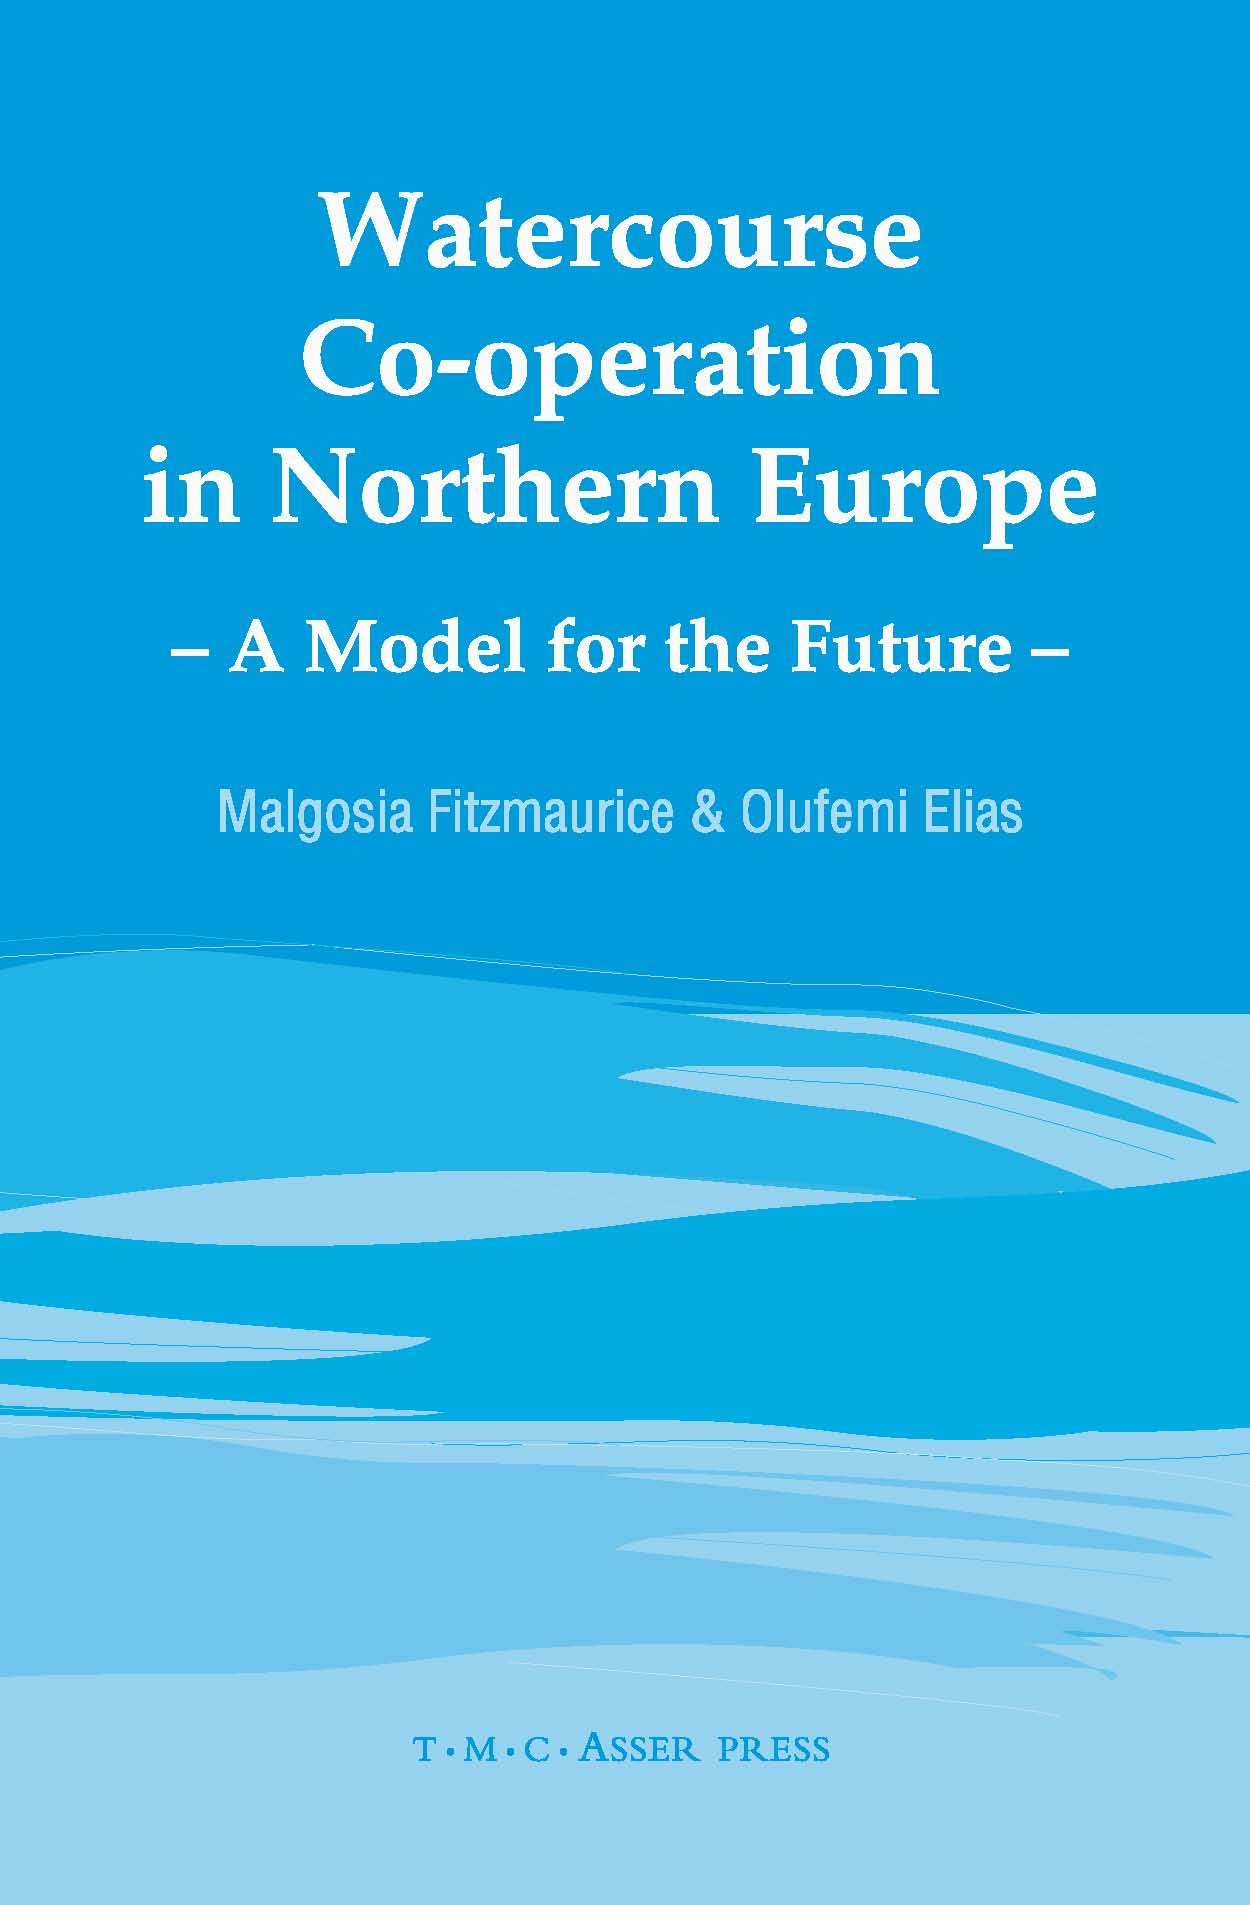 Watercourse Co-operation in Northern Europe - A Model for the Future